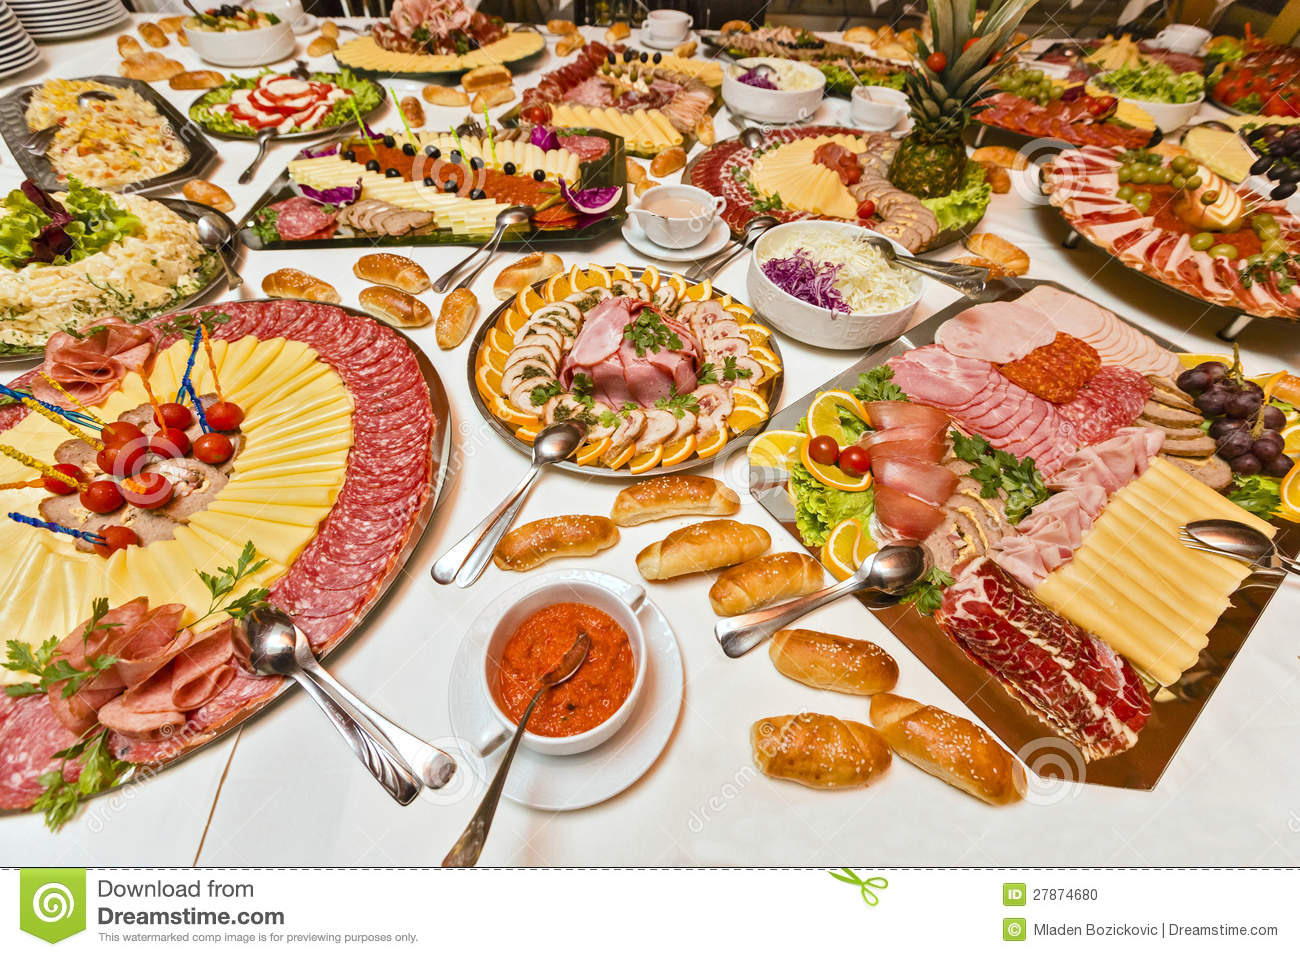 Table filled with numerous types of tasty, catering food.